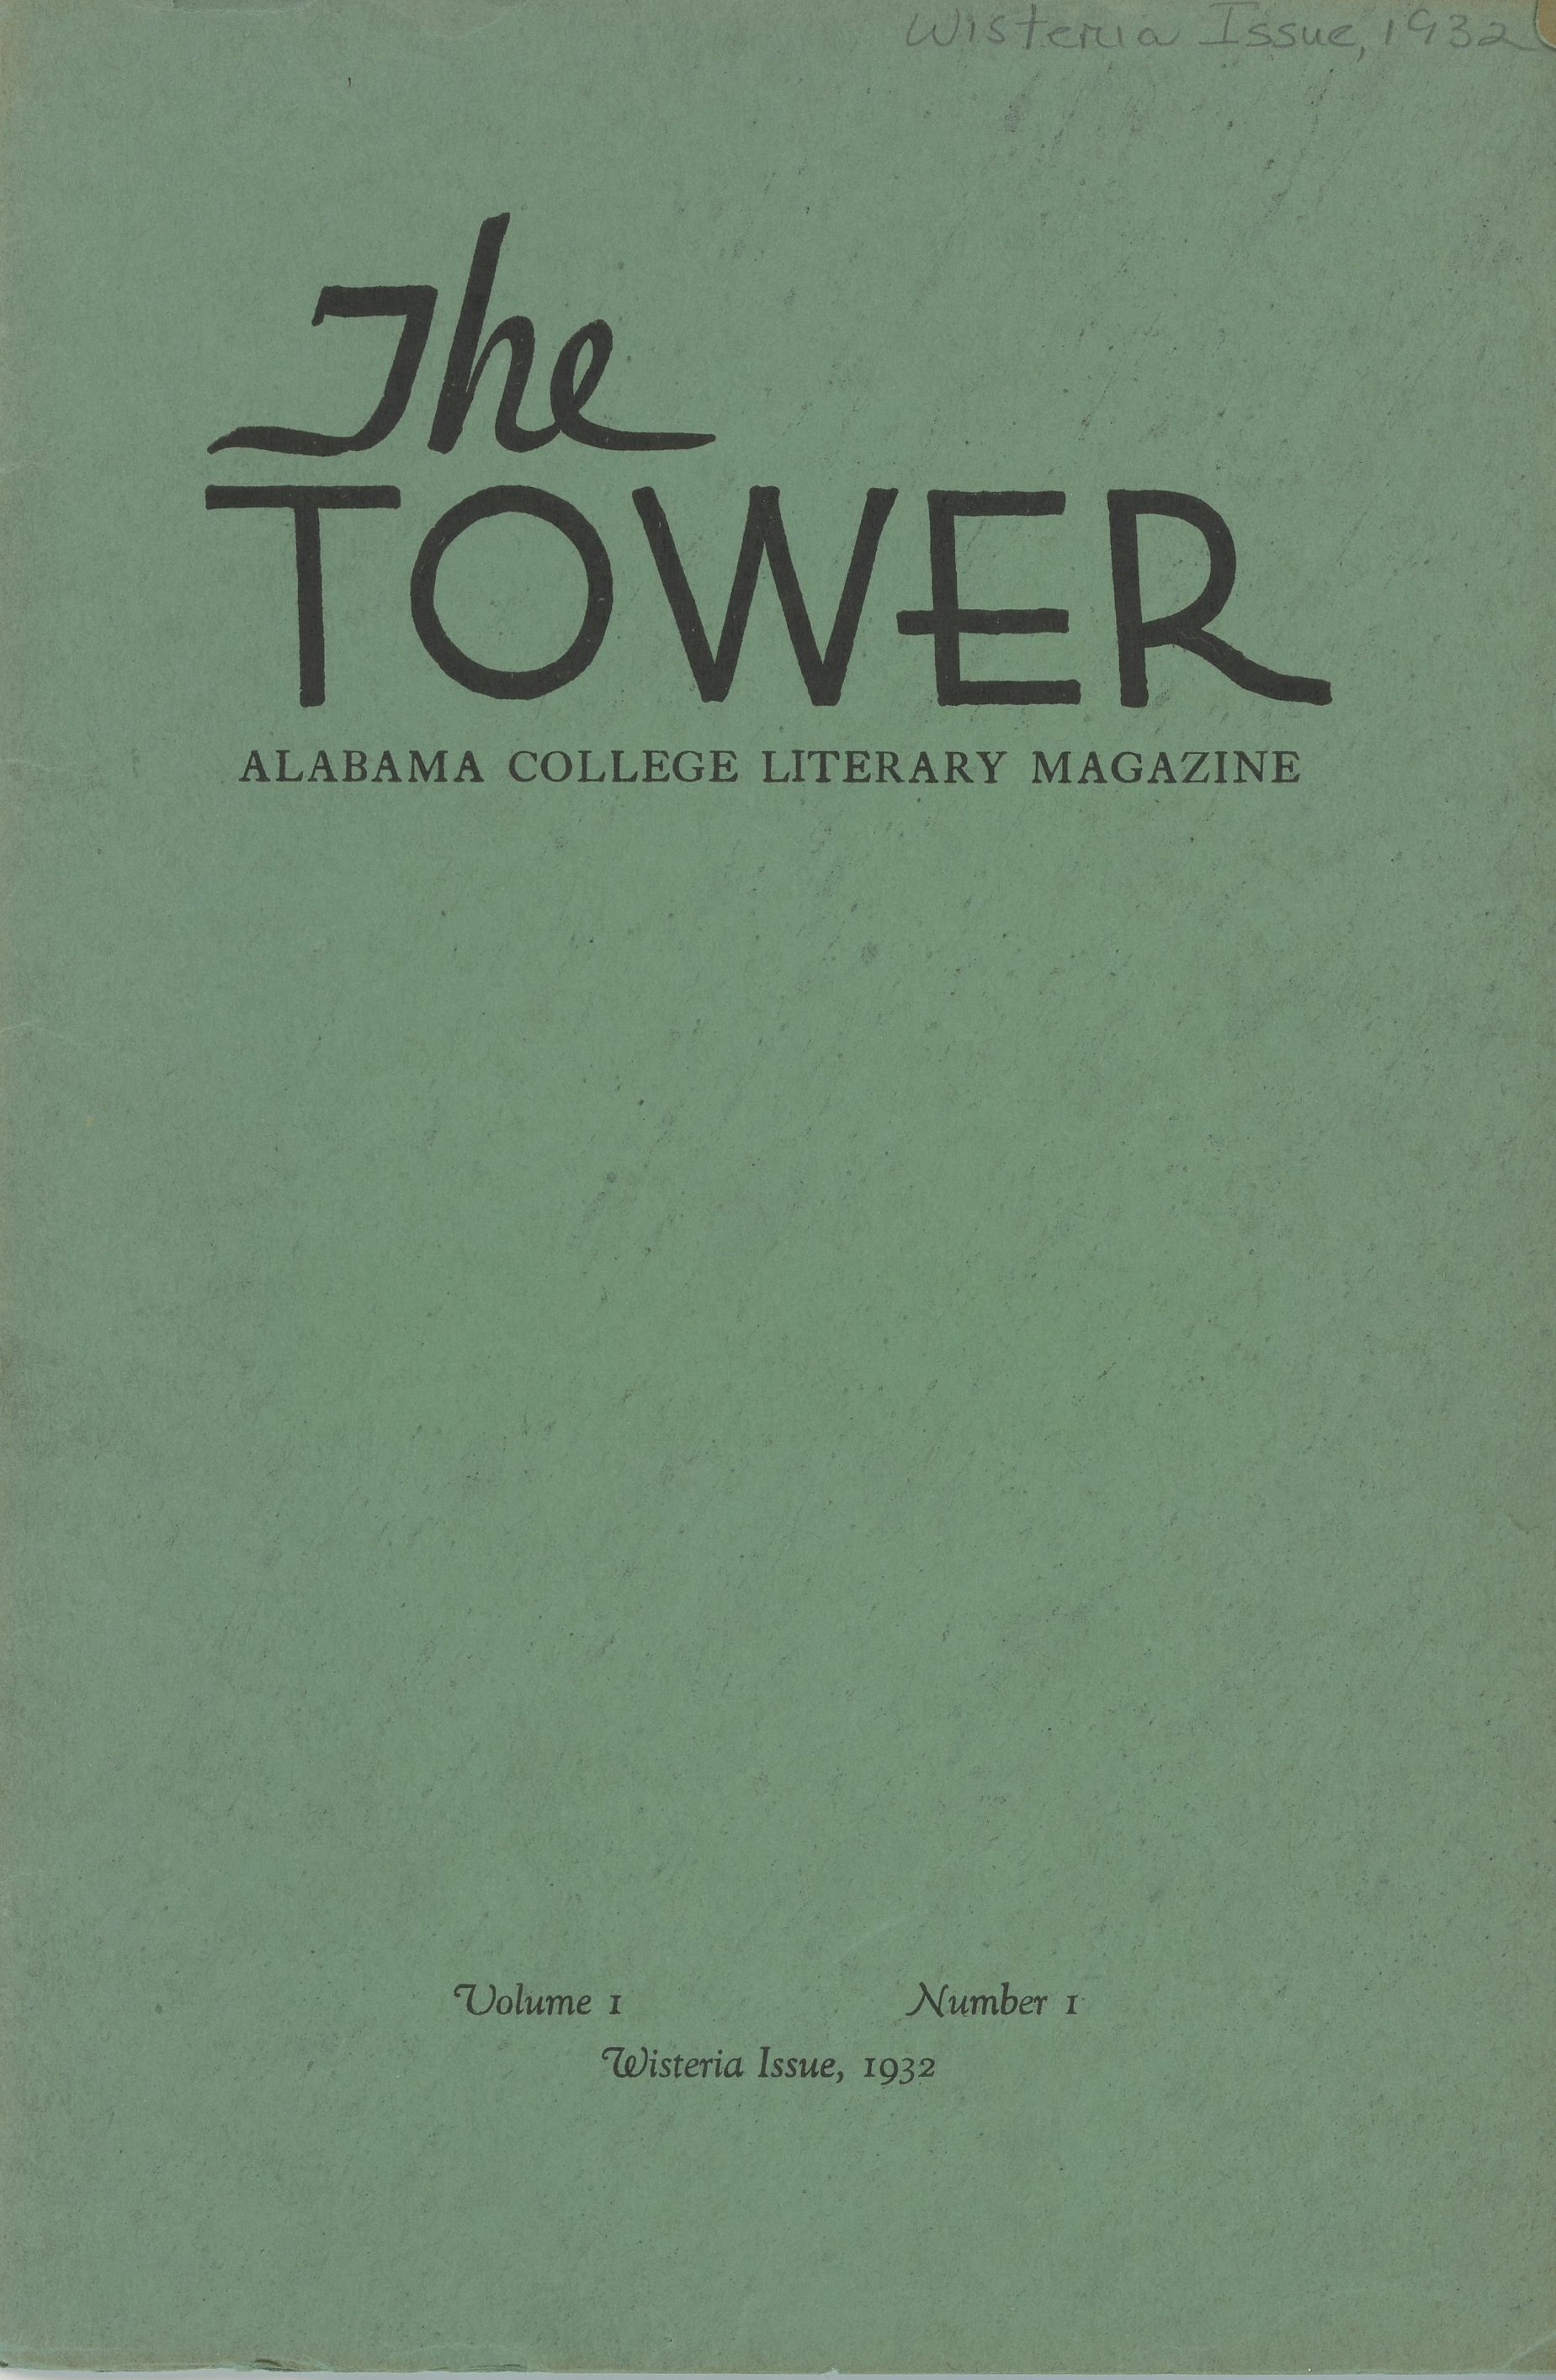 Here is the first published volume of the literary magazine named after the Tower. It was published in 1932.